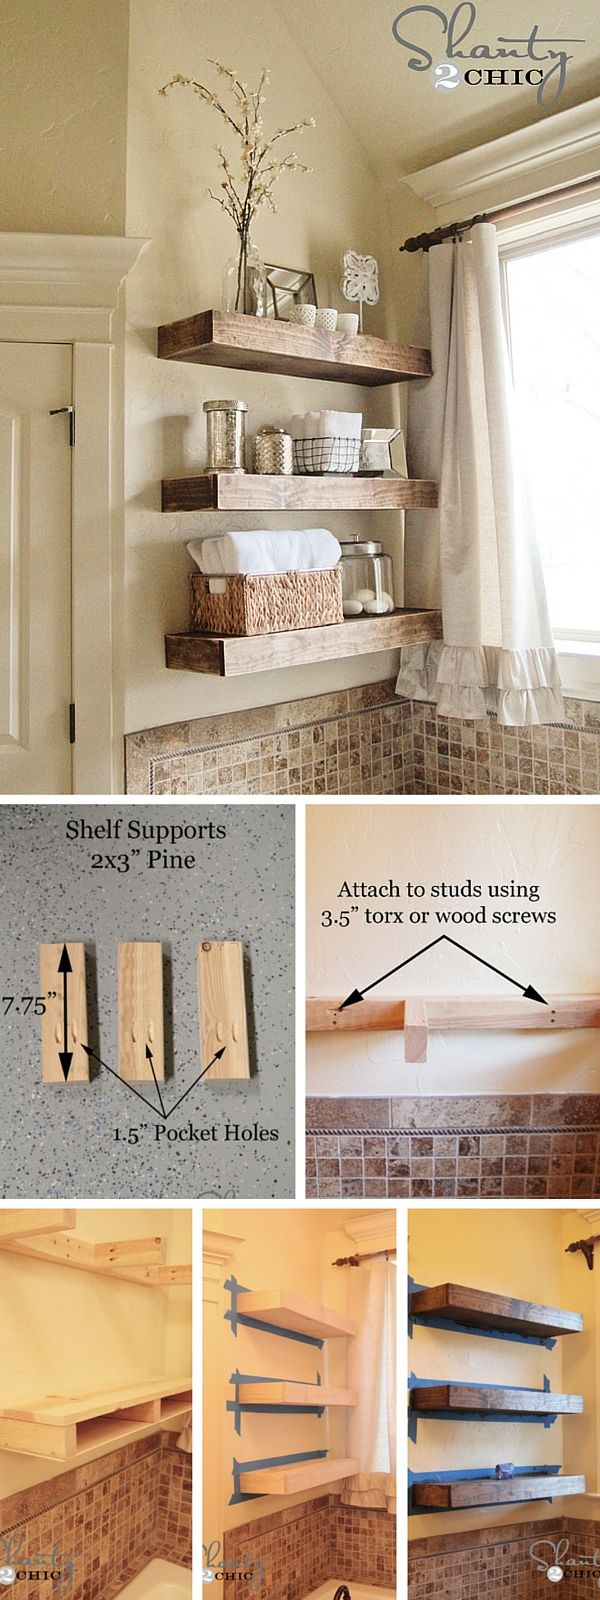 id e d coration salle de bain check out the tutorial diy rustic bathroom shelves listspirit. Black Bedroom Furniture Sets. Home Design Ideas